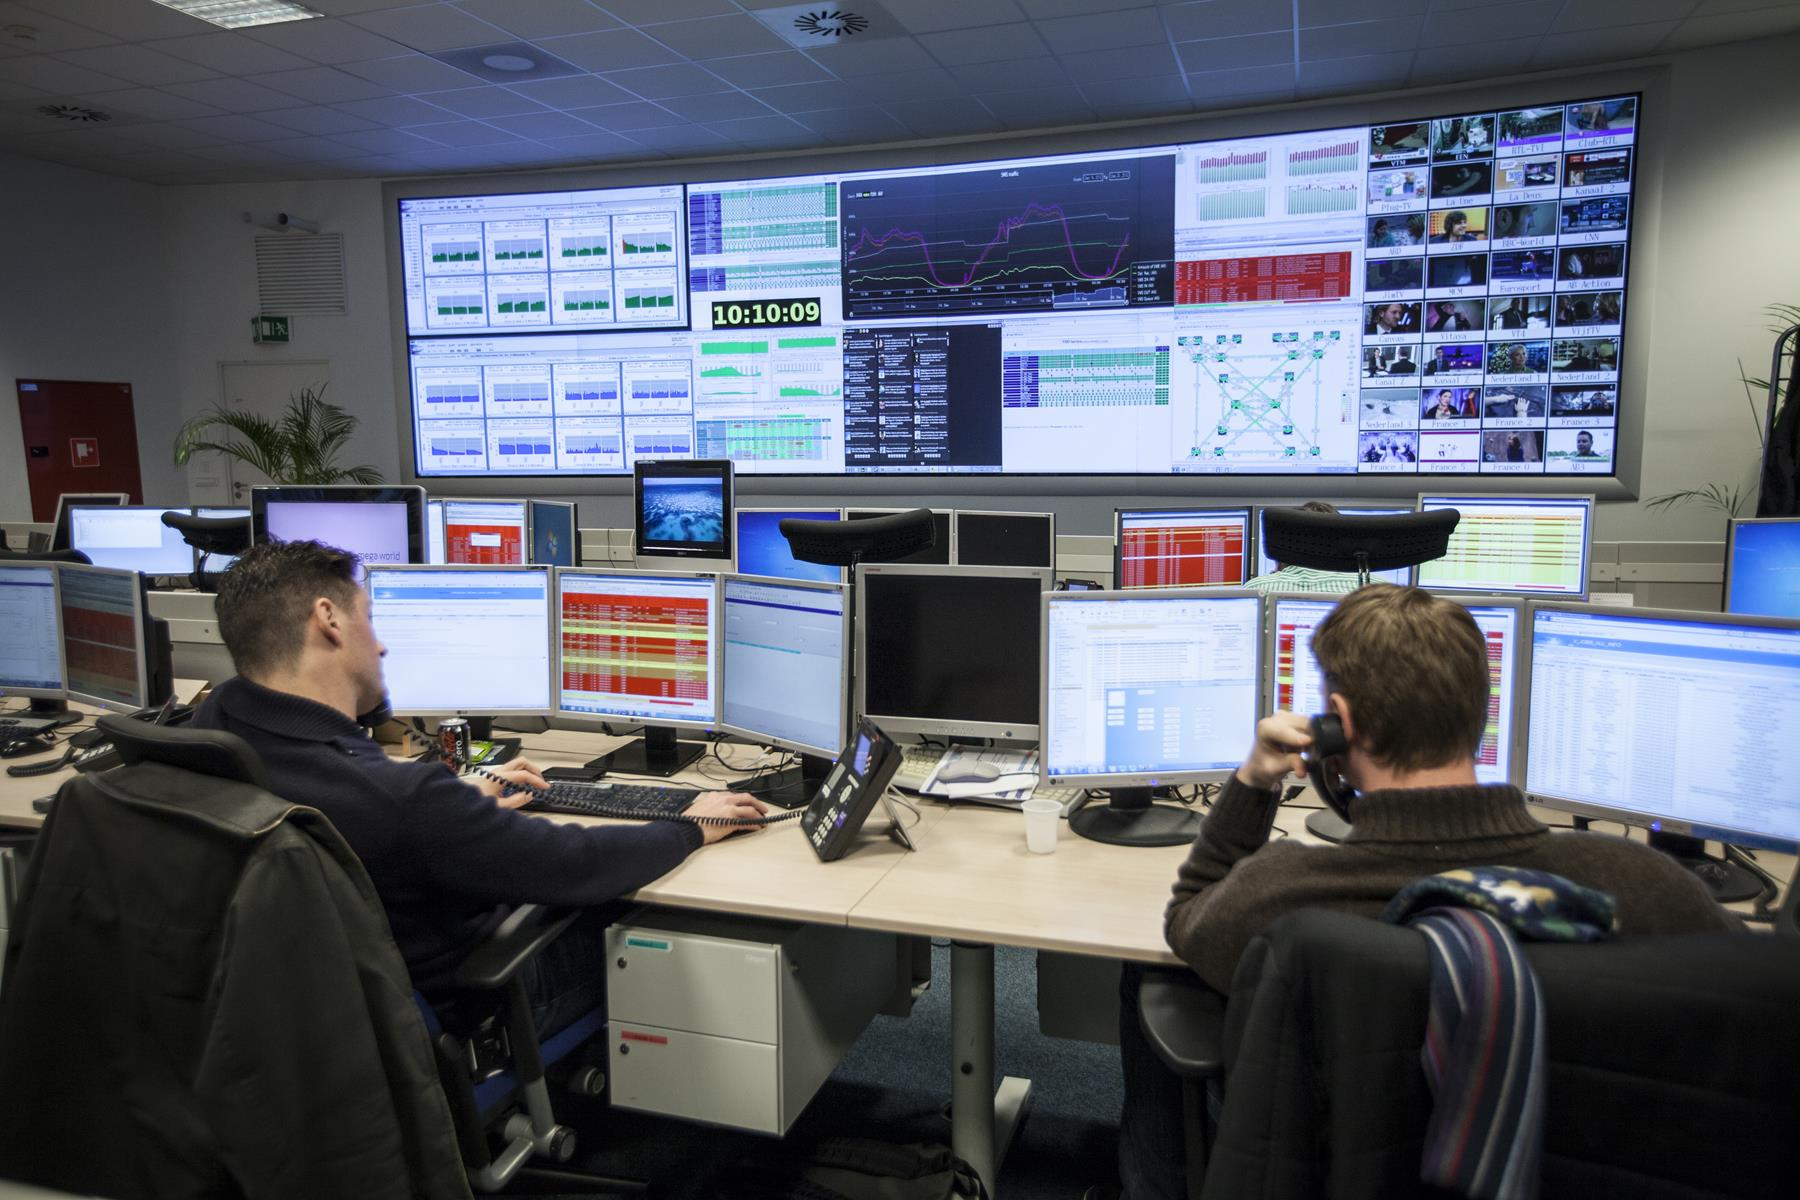 Belgacom Network Operations Center Barco